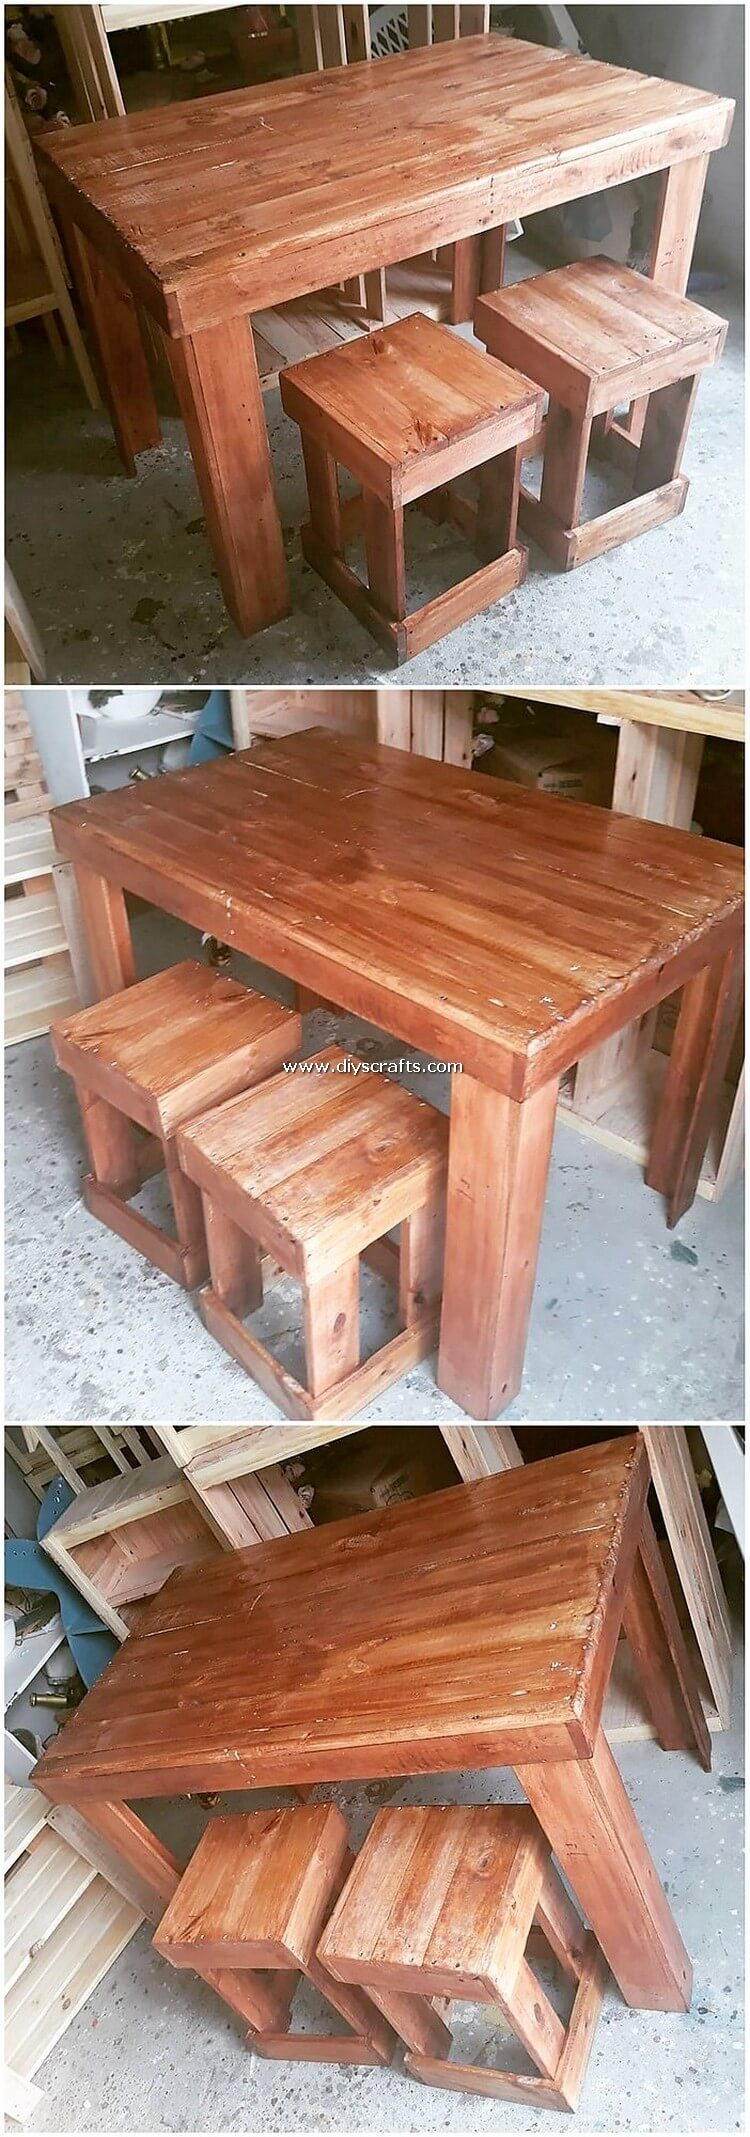 Pallet-Table-and-Stools